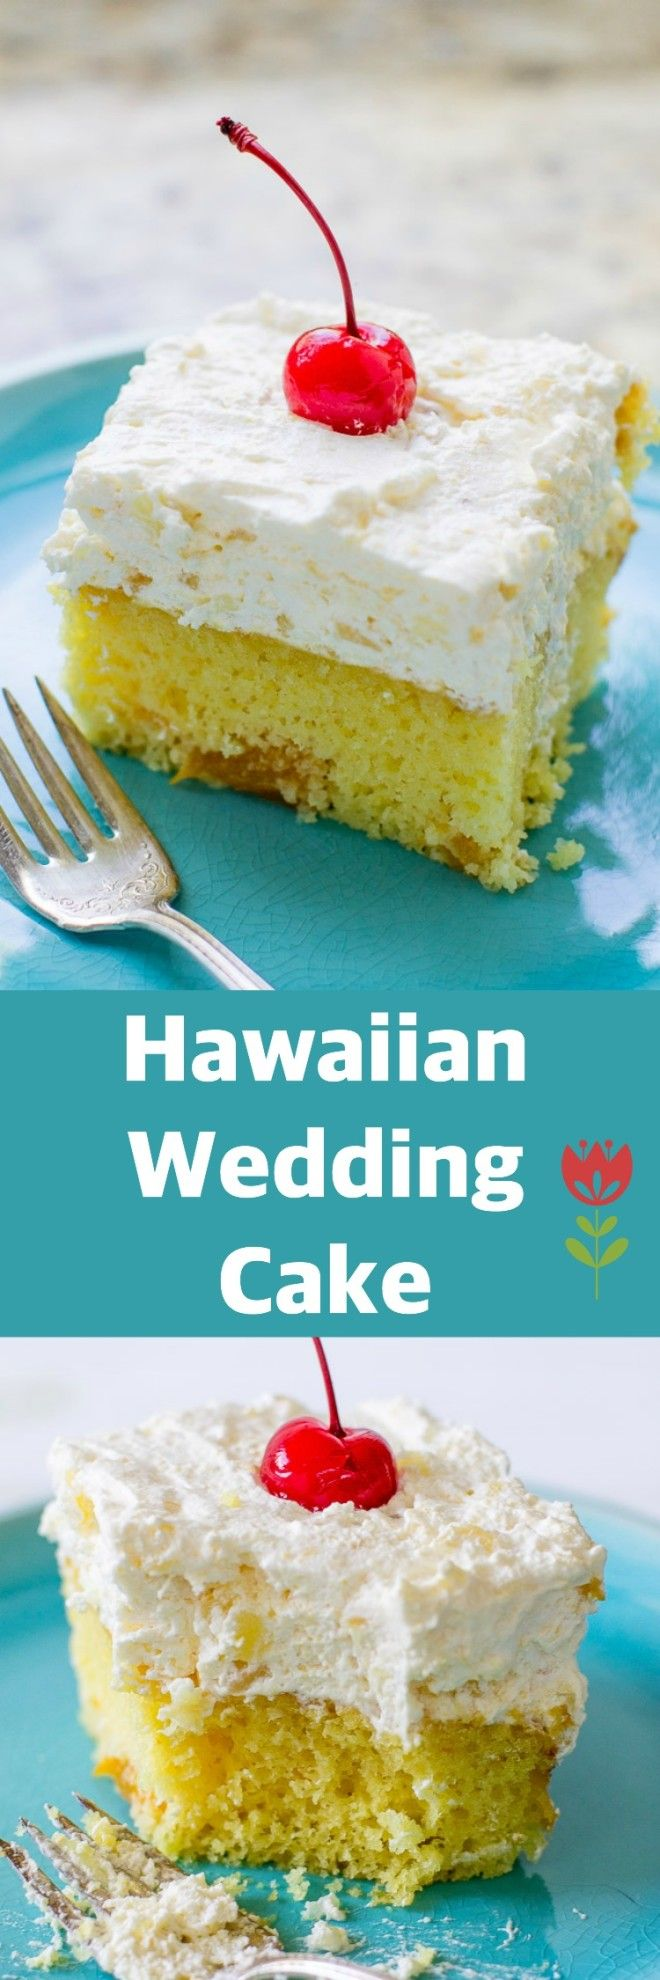 royal hawaiian wedding cake recipe